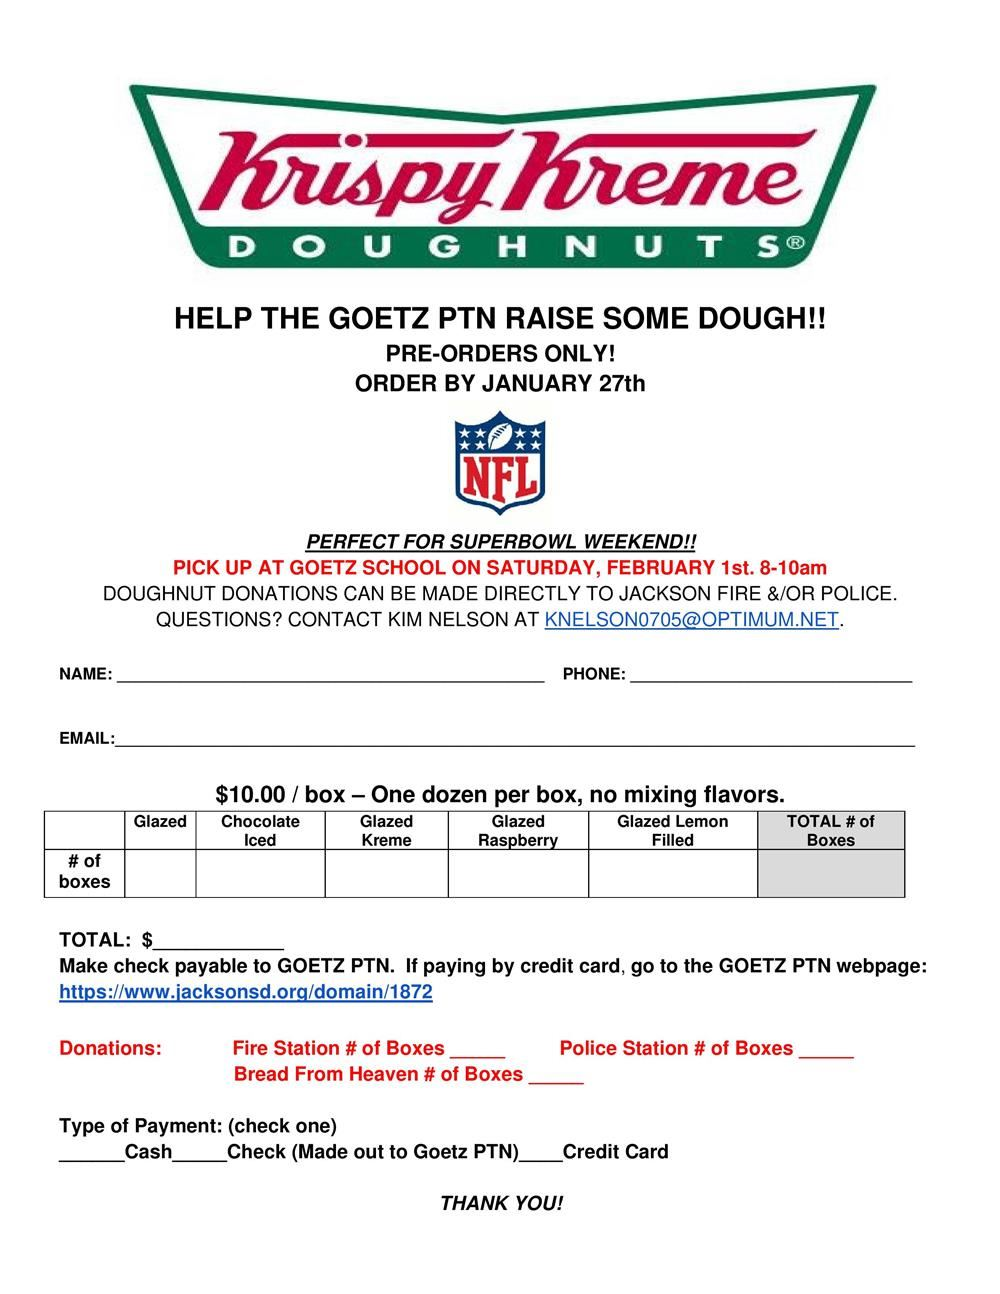 flyer advertising krispy kreme fundraiser